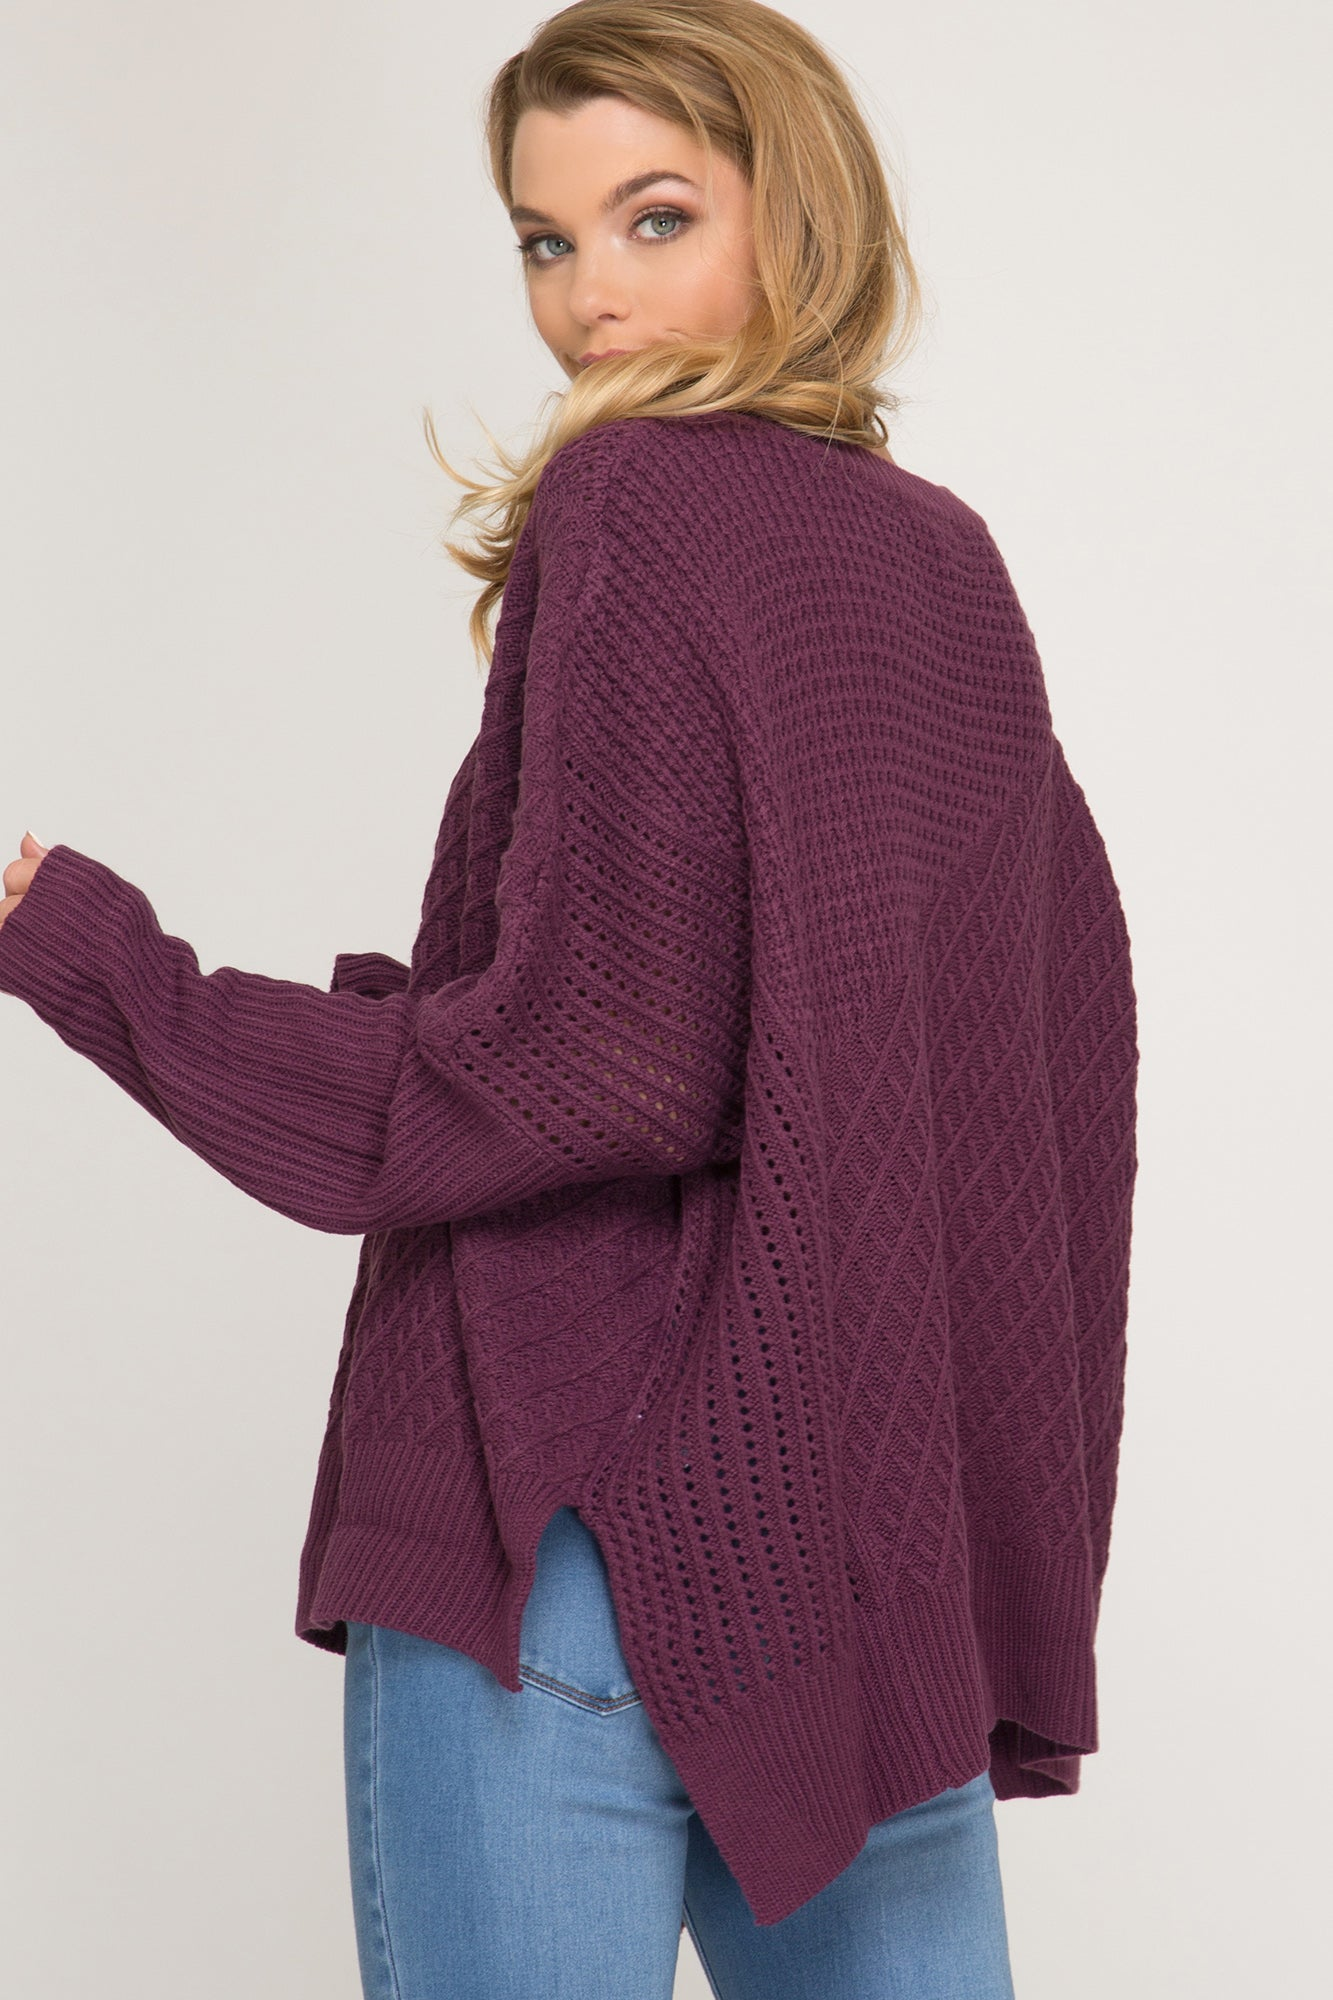 PLUM-perfect Side Zip Chunky Sweater (misses OR curvy)